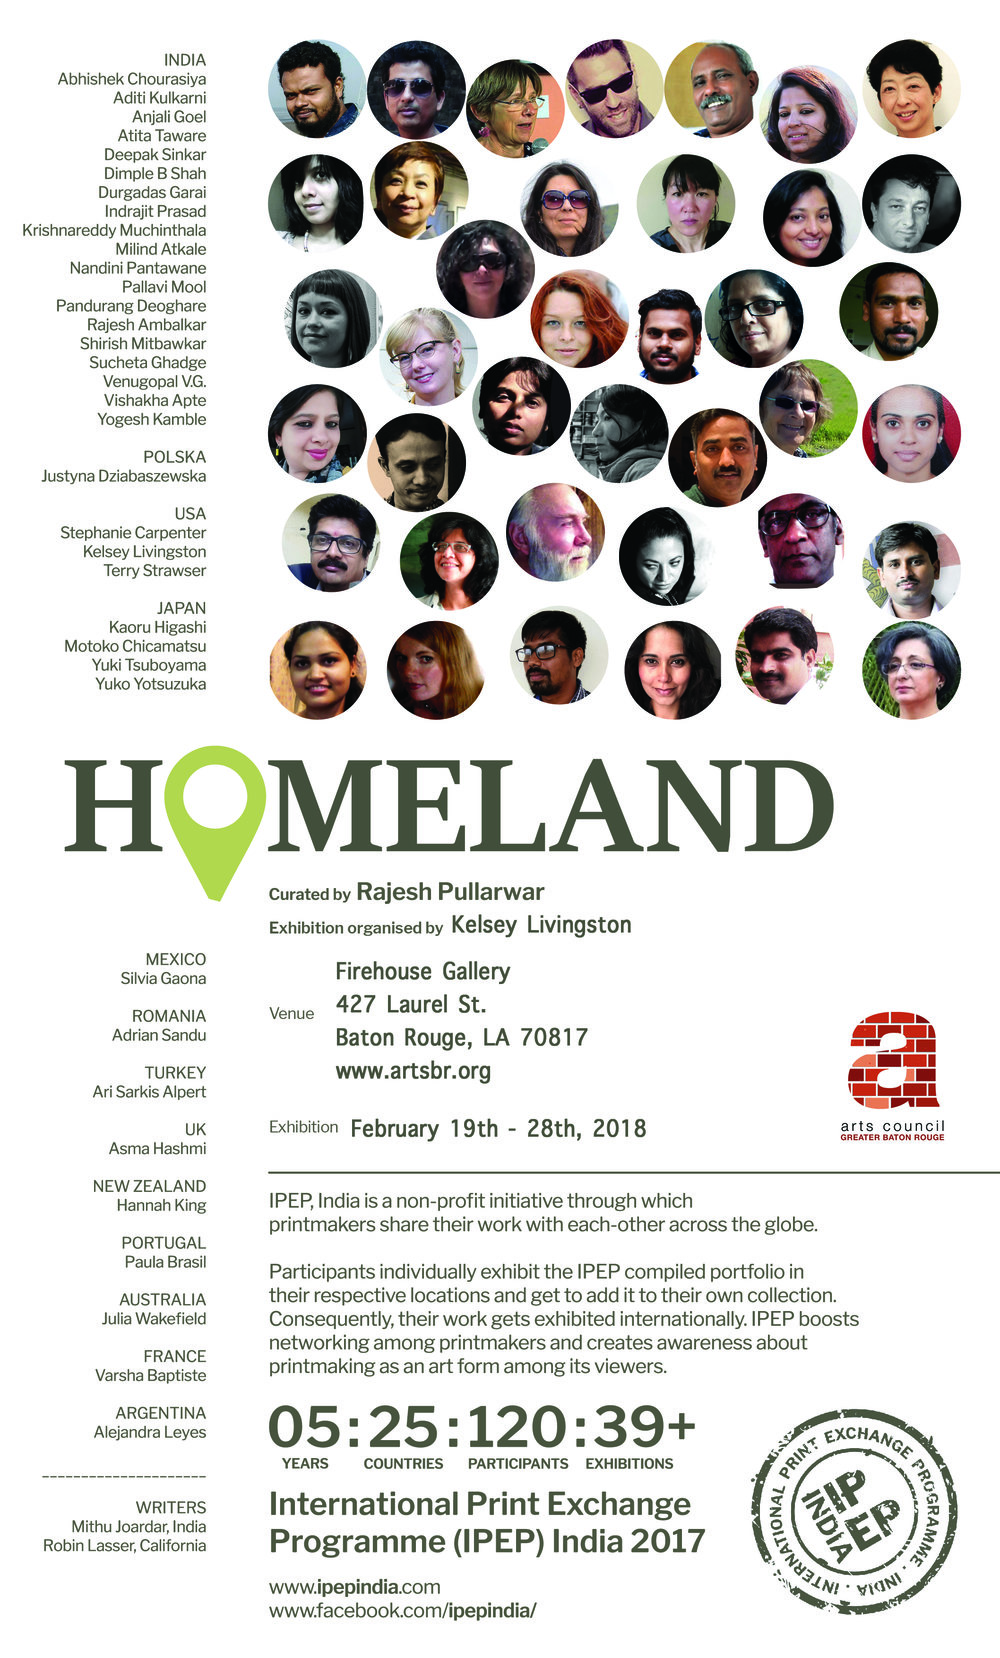 USE Homeland_IPEP2017 - Poster - A4 - Photocopier Safe.jpg